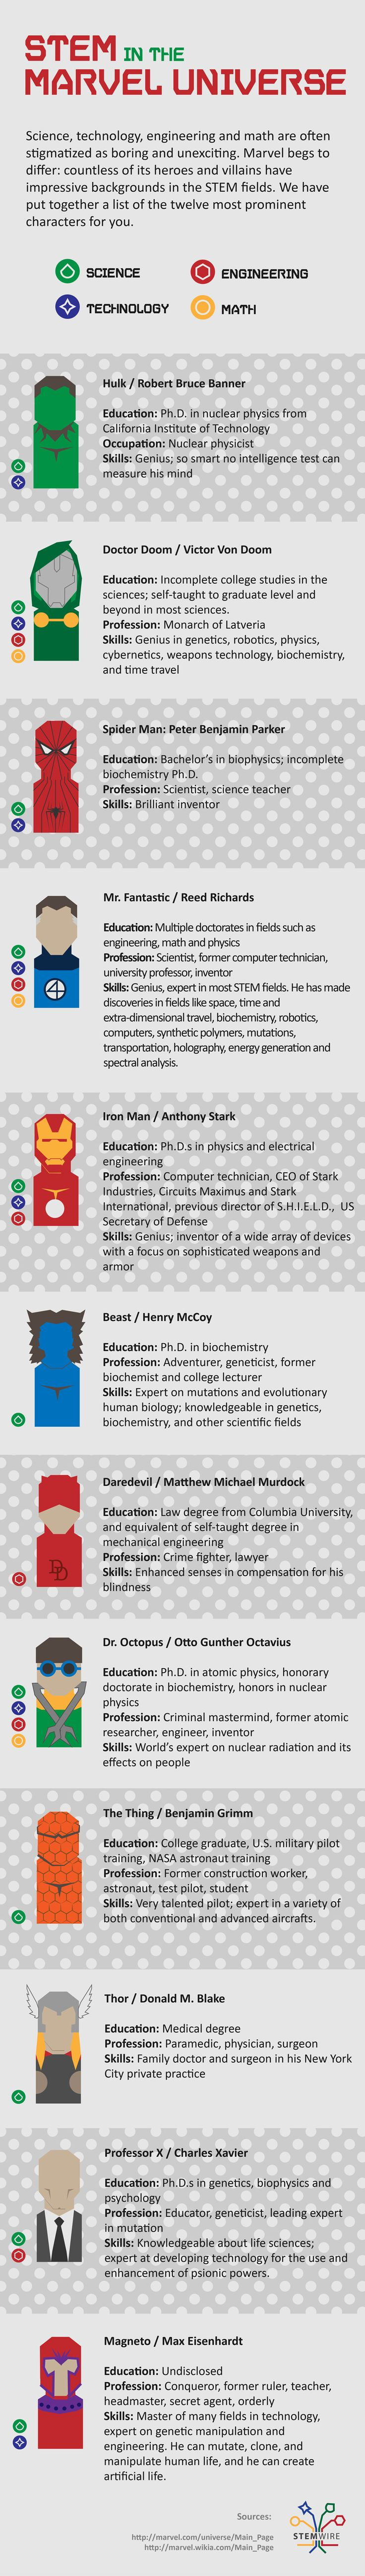 STEM in the Marvel Universe